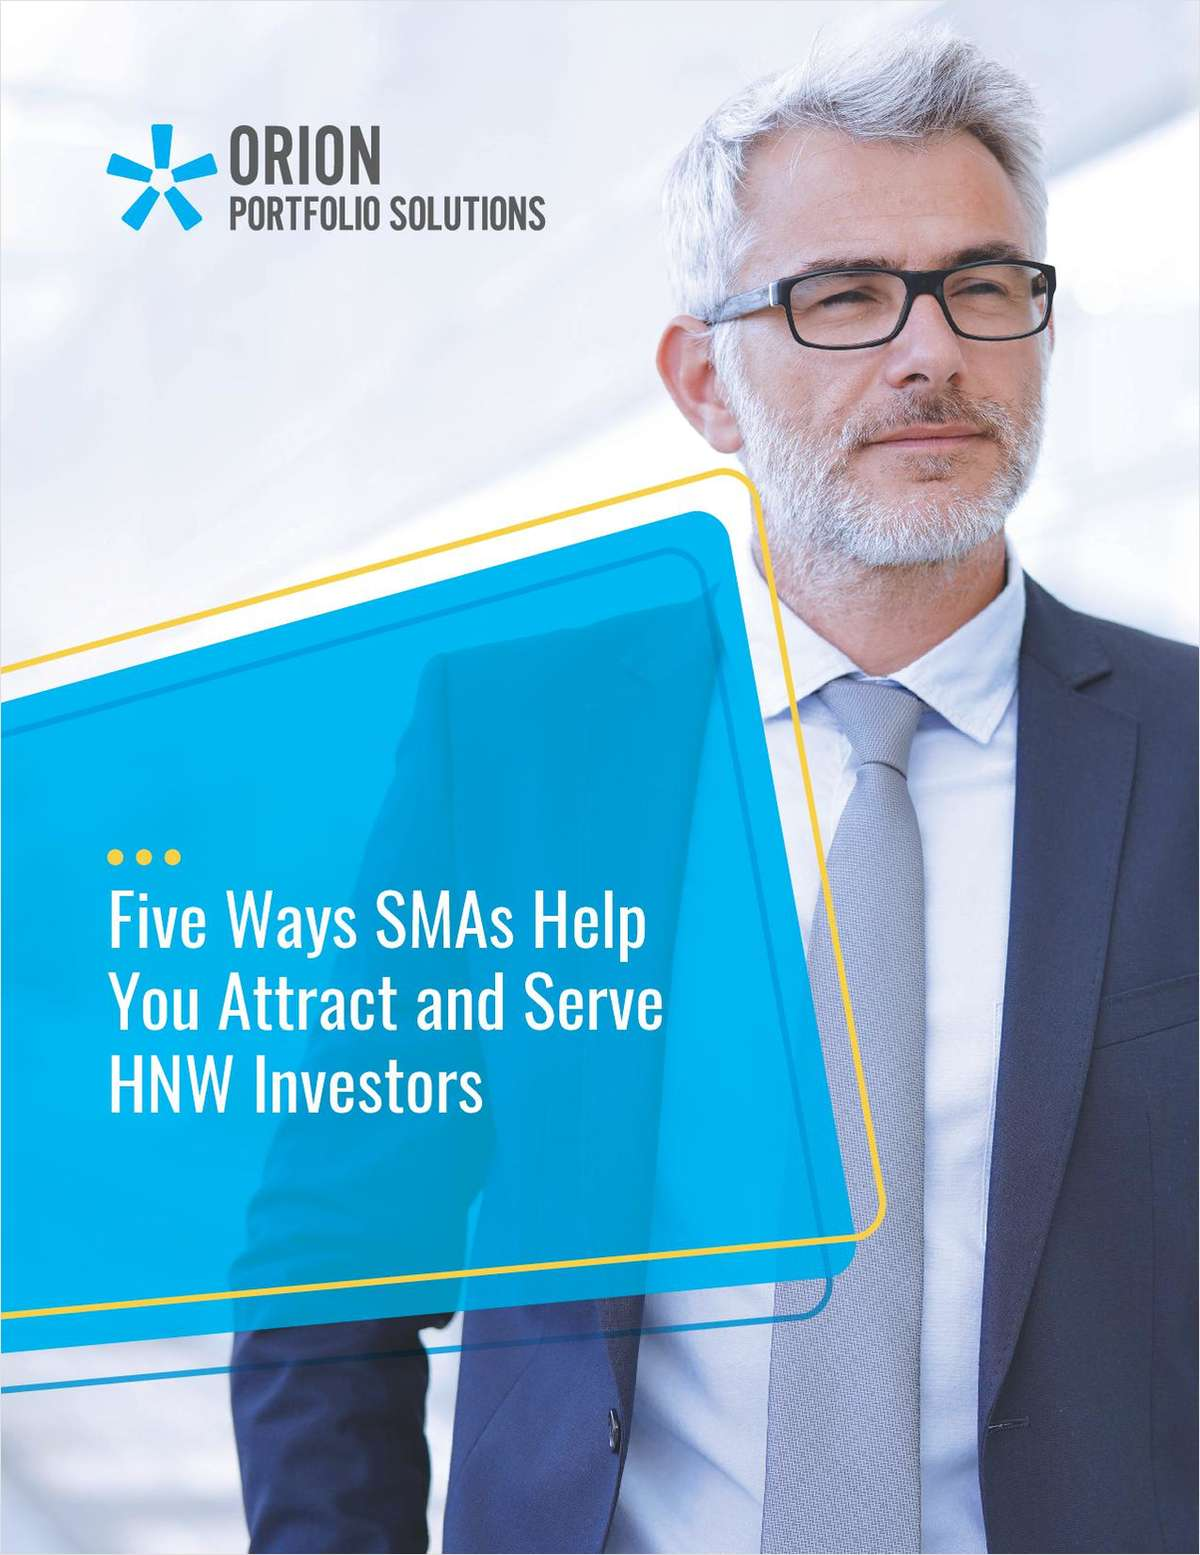 Five Ways SMAs Help You Attract and Serve HNW Investors